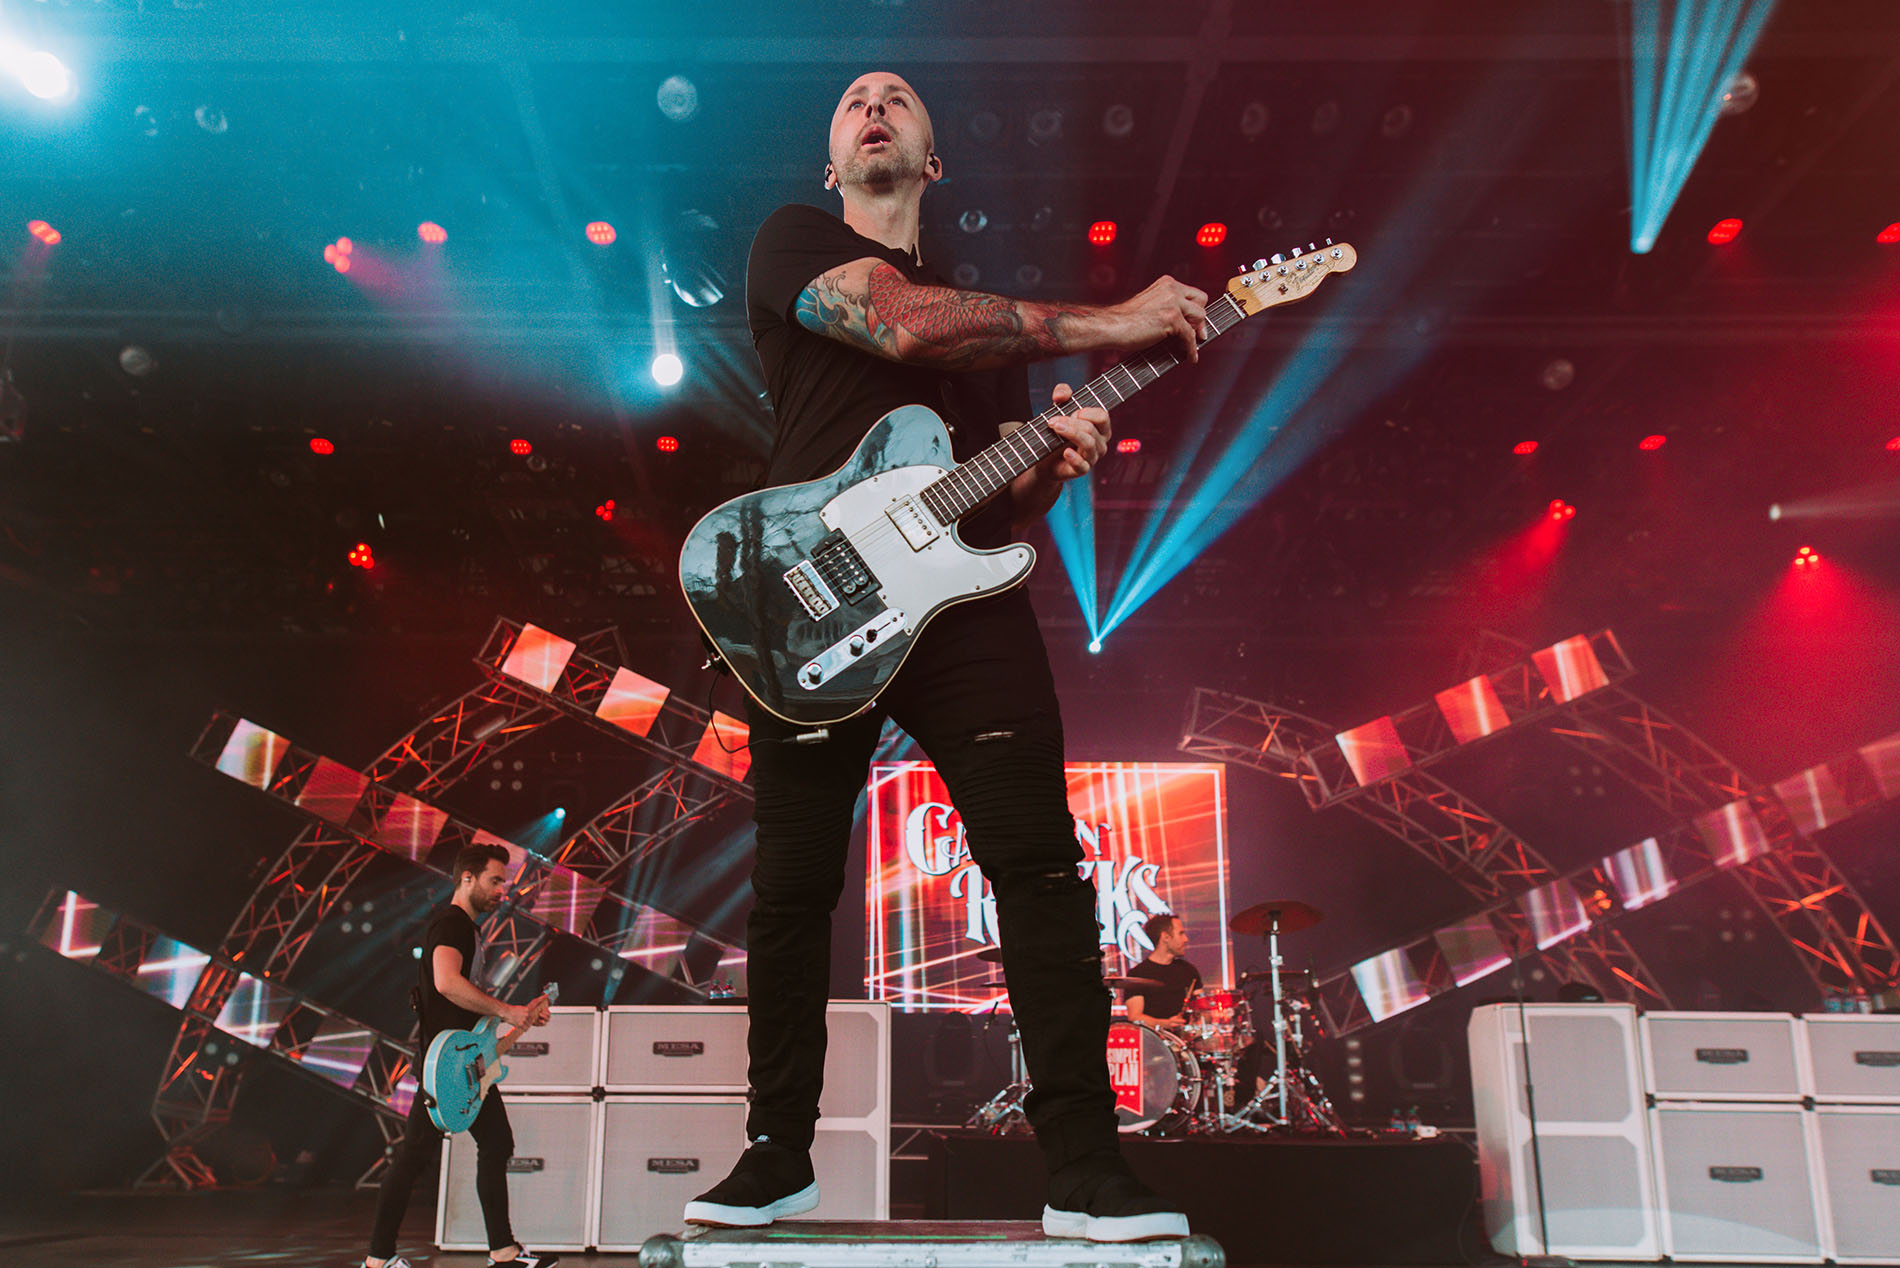 simple plan jeff stinco disney garden rocks band concert rock photo photography image